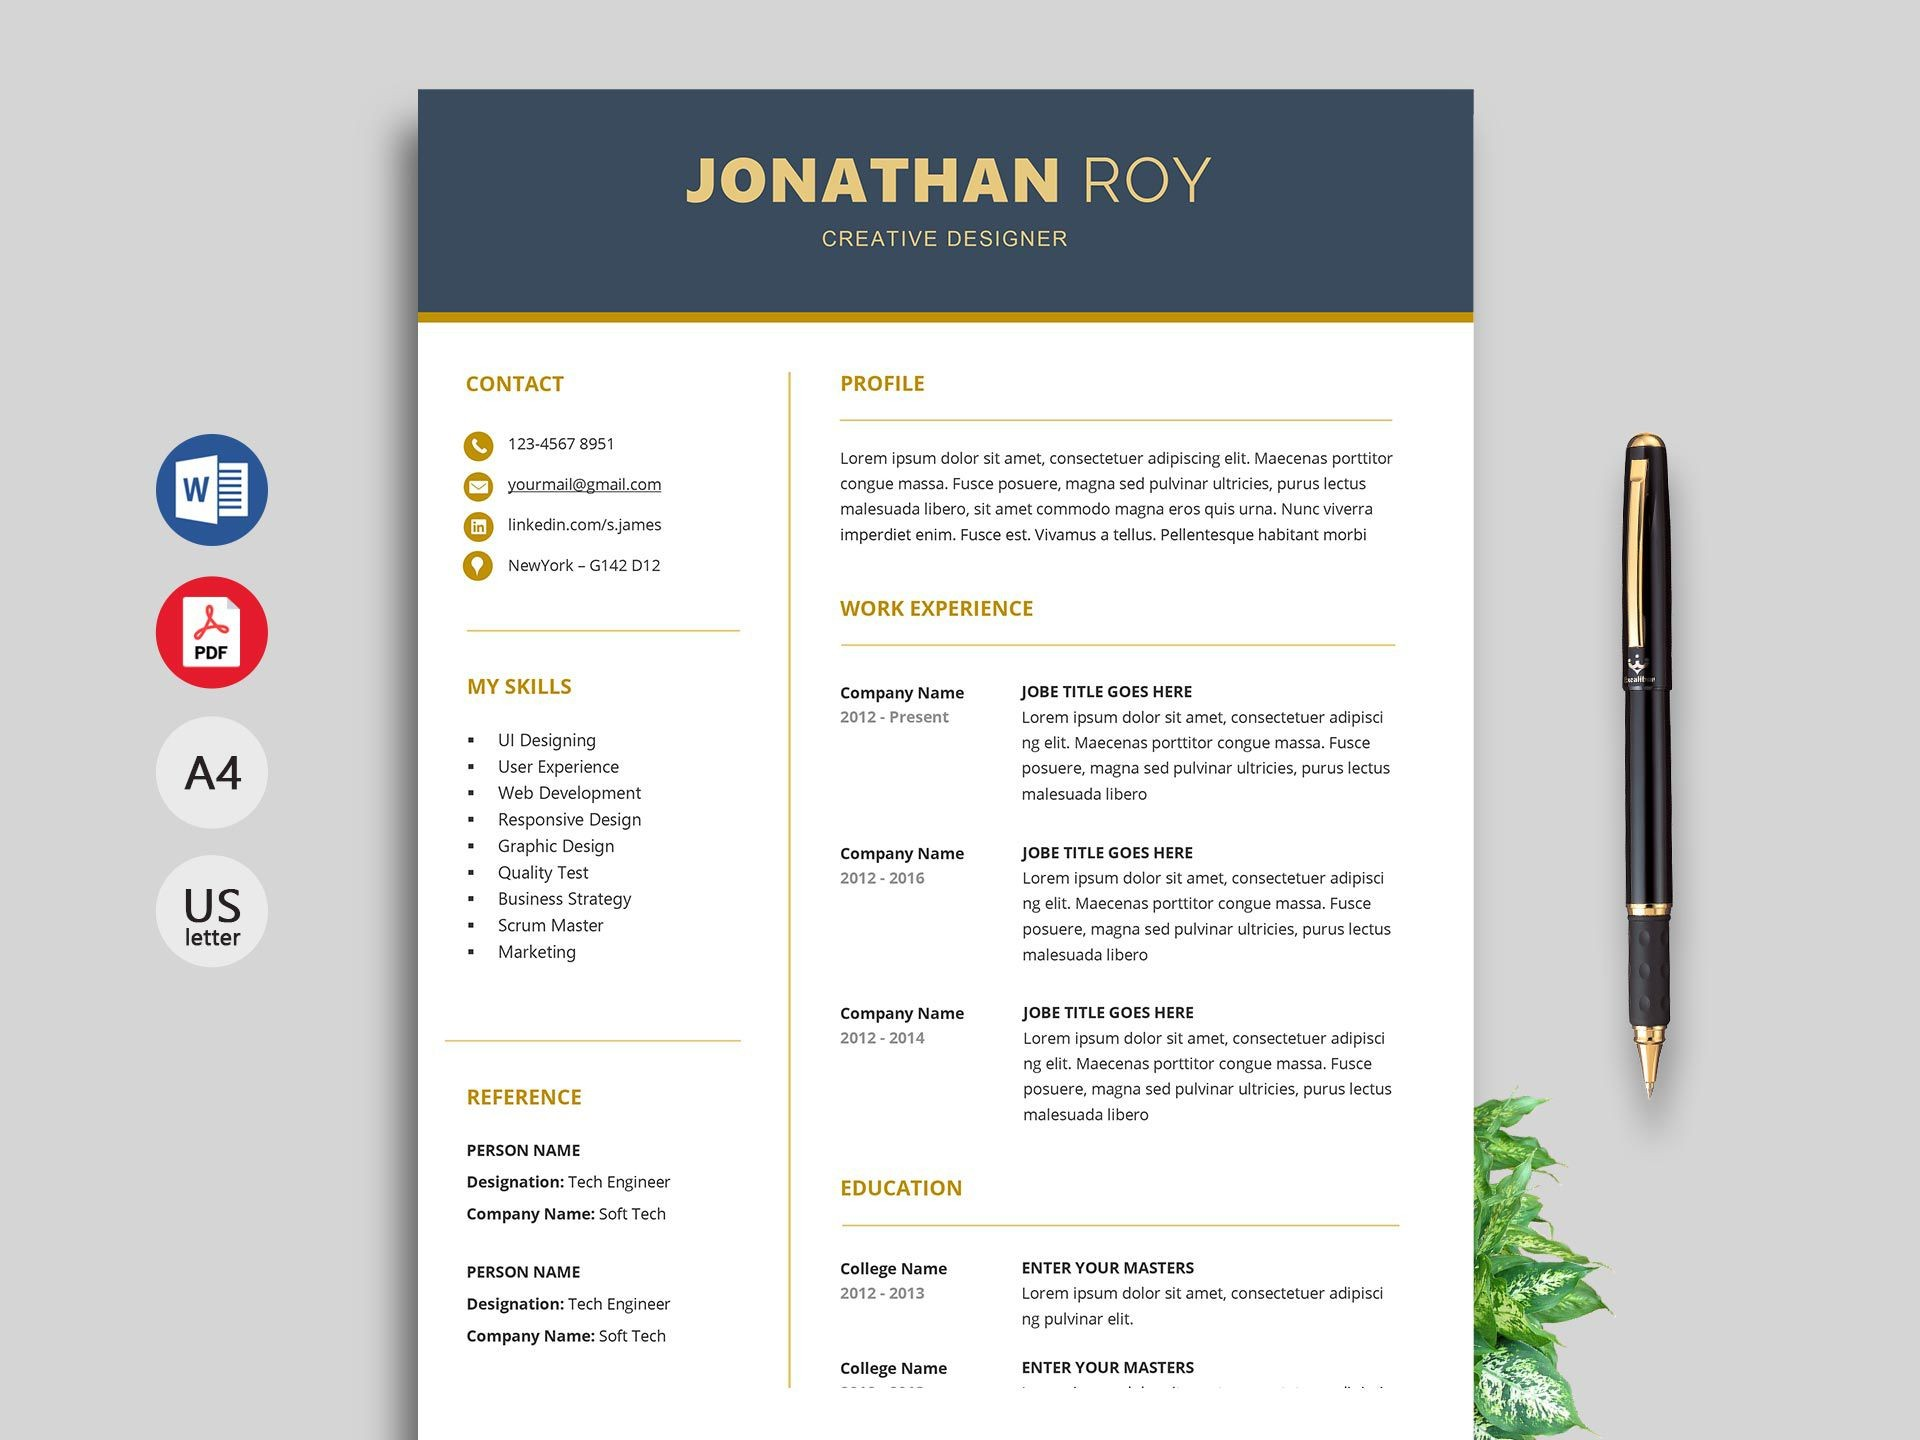 009 Rare Best Free Resume Template 2020 Sample  Word Review1920